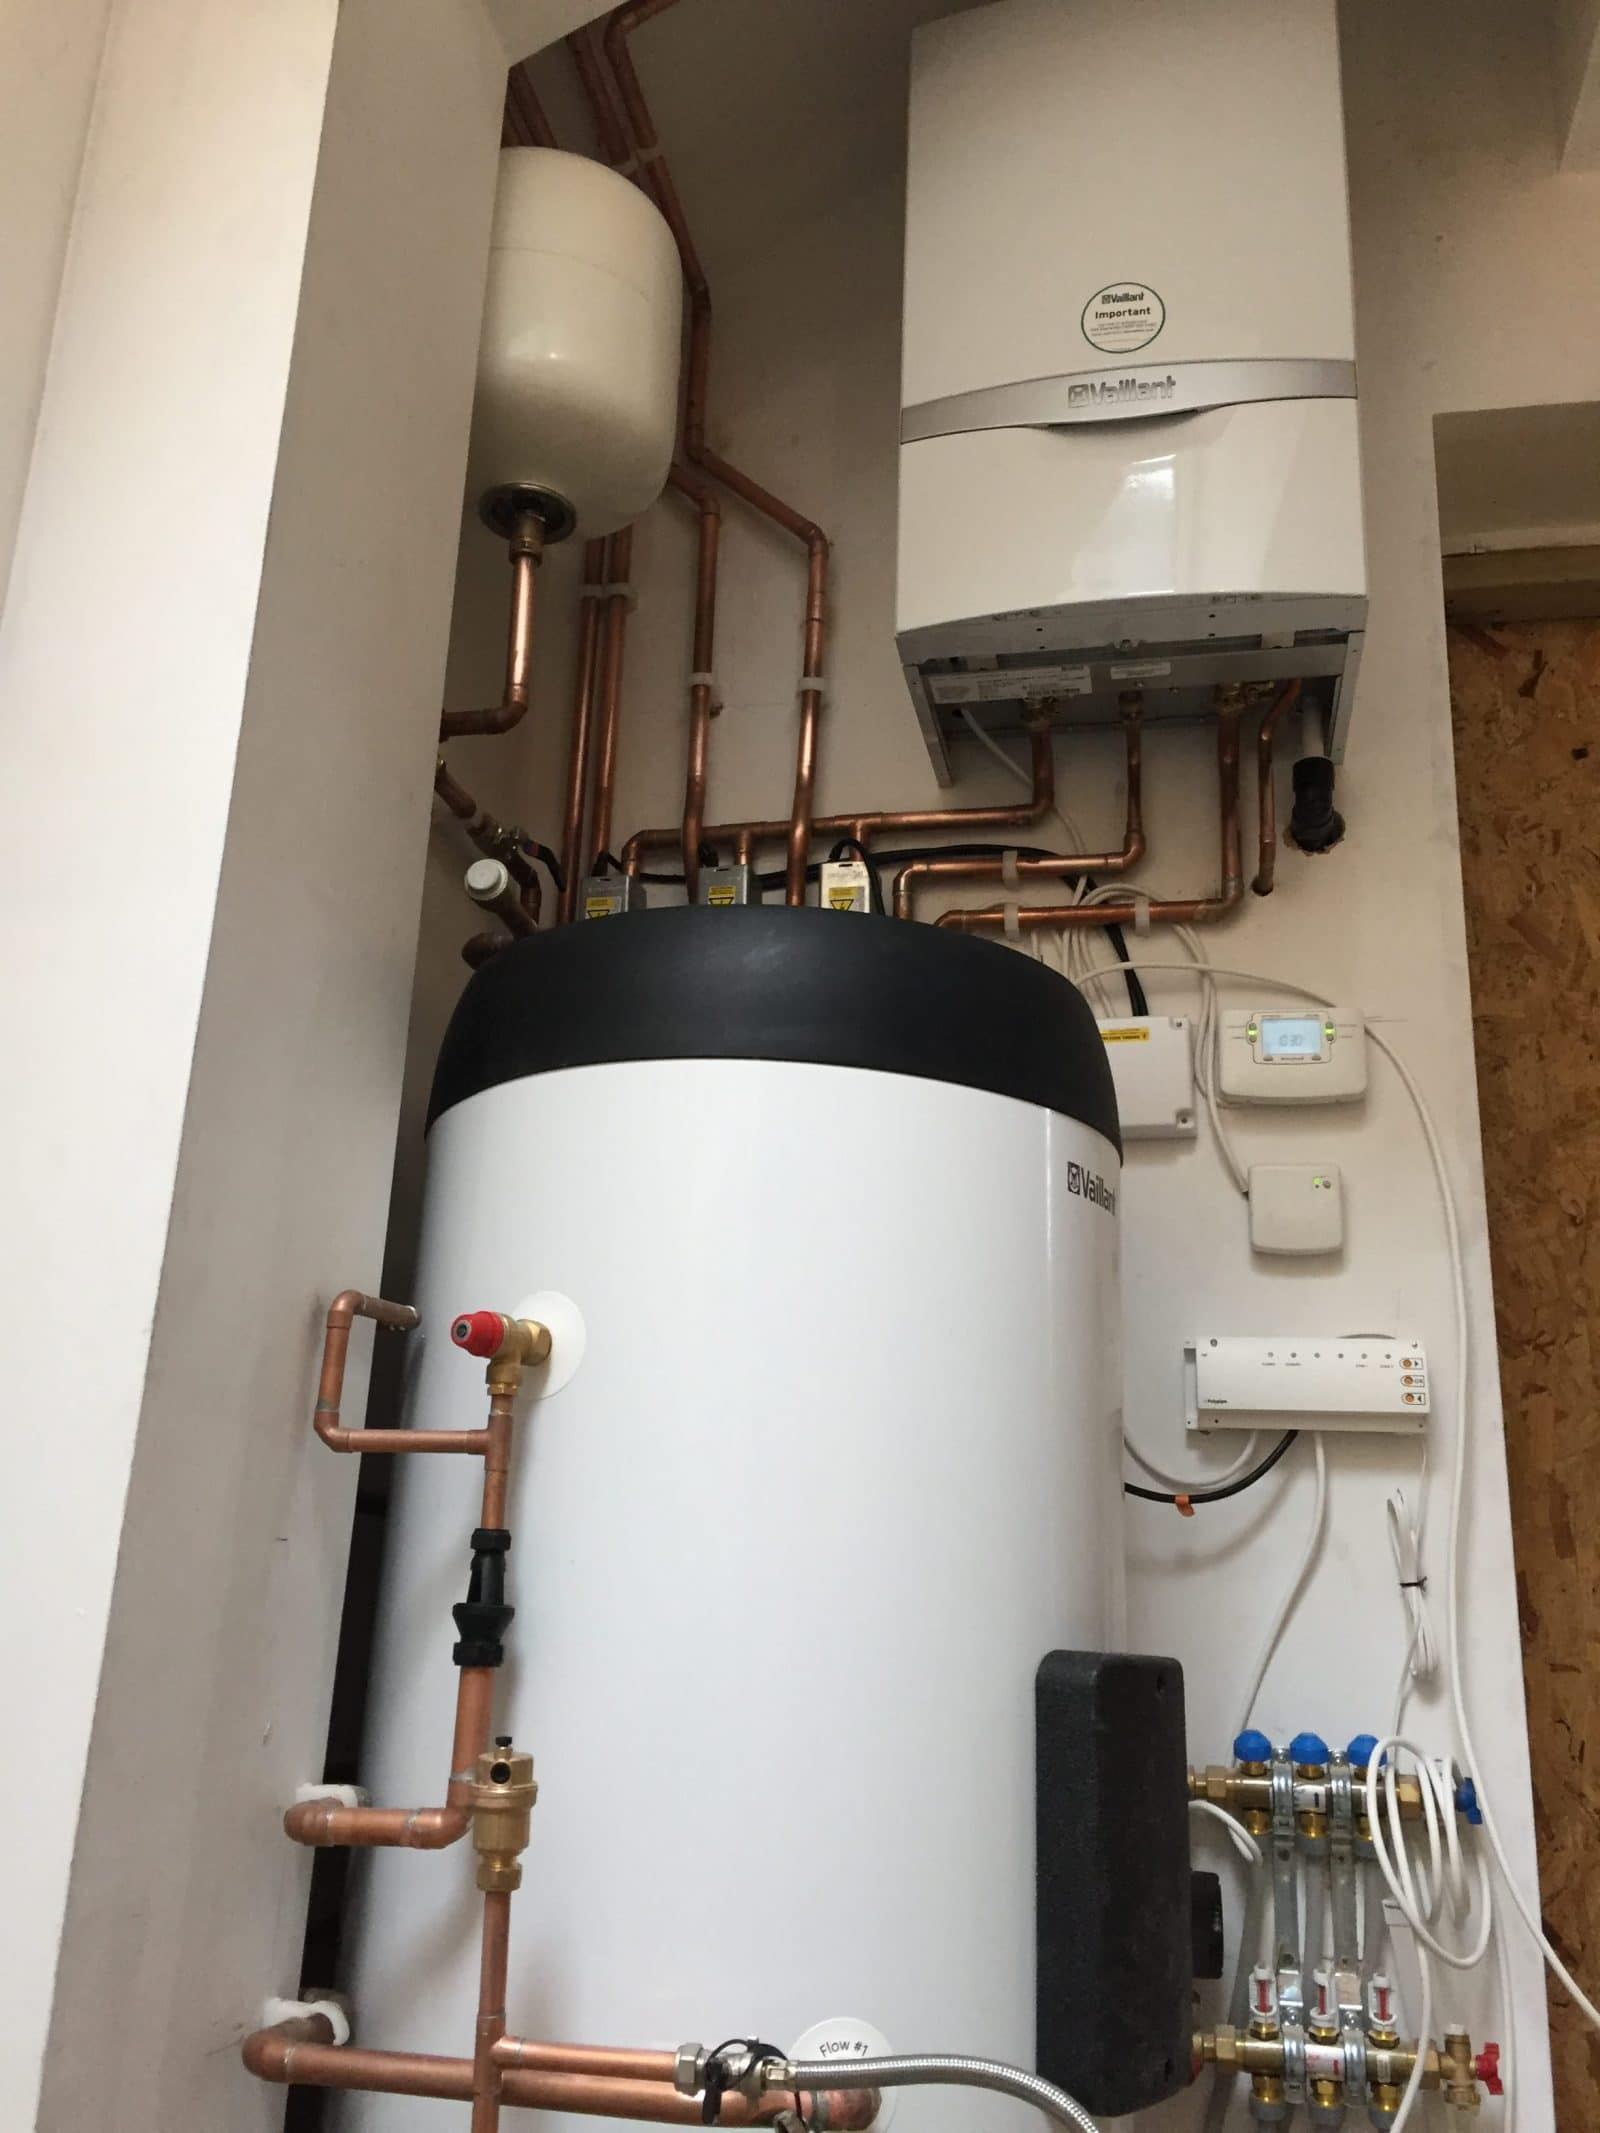 Hot Water Cylinder and boiler